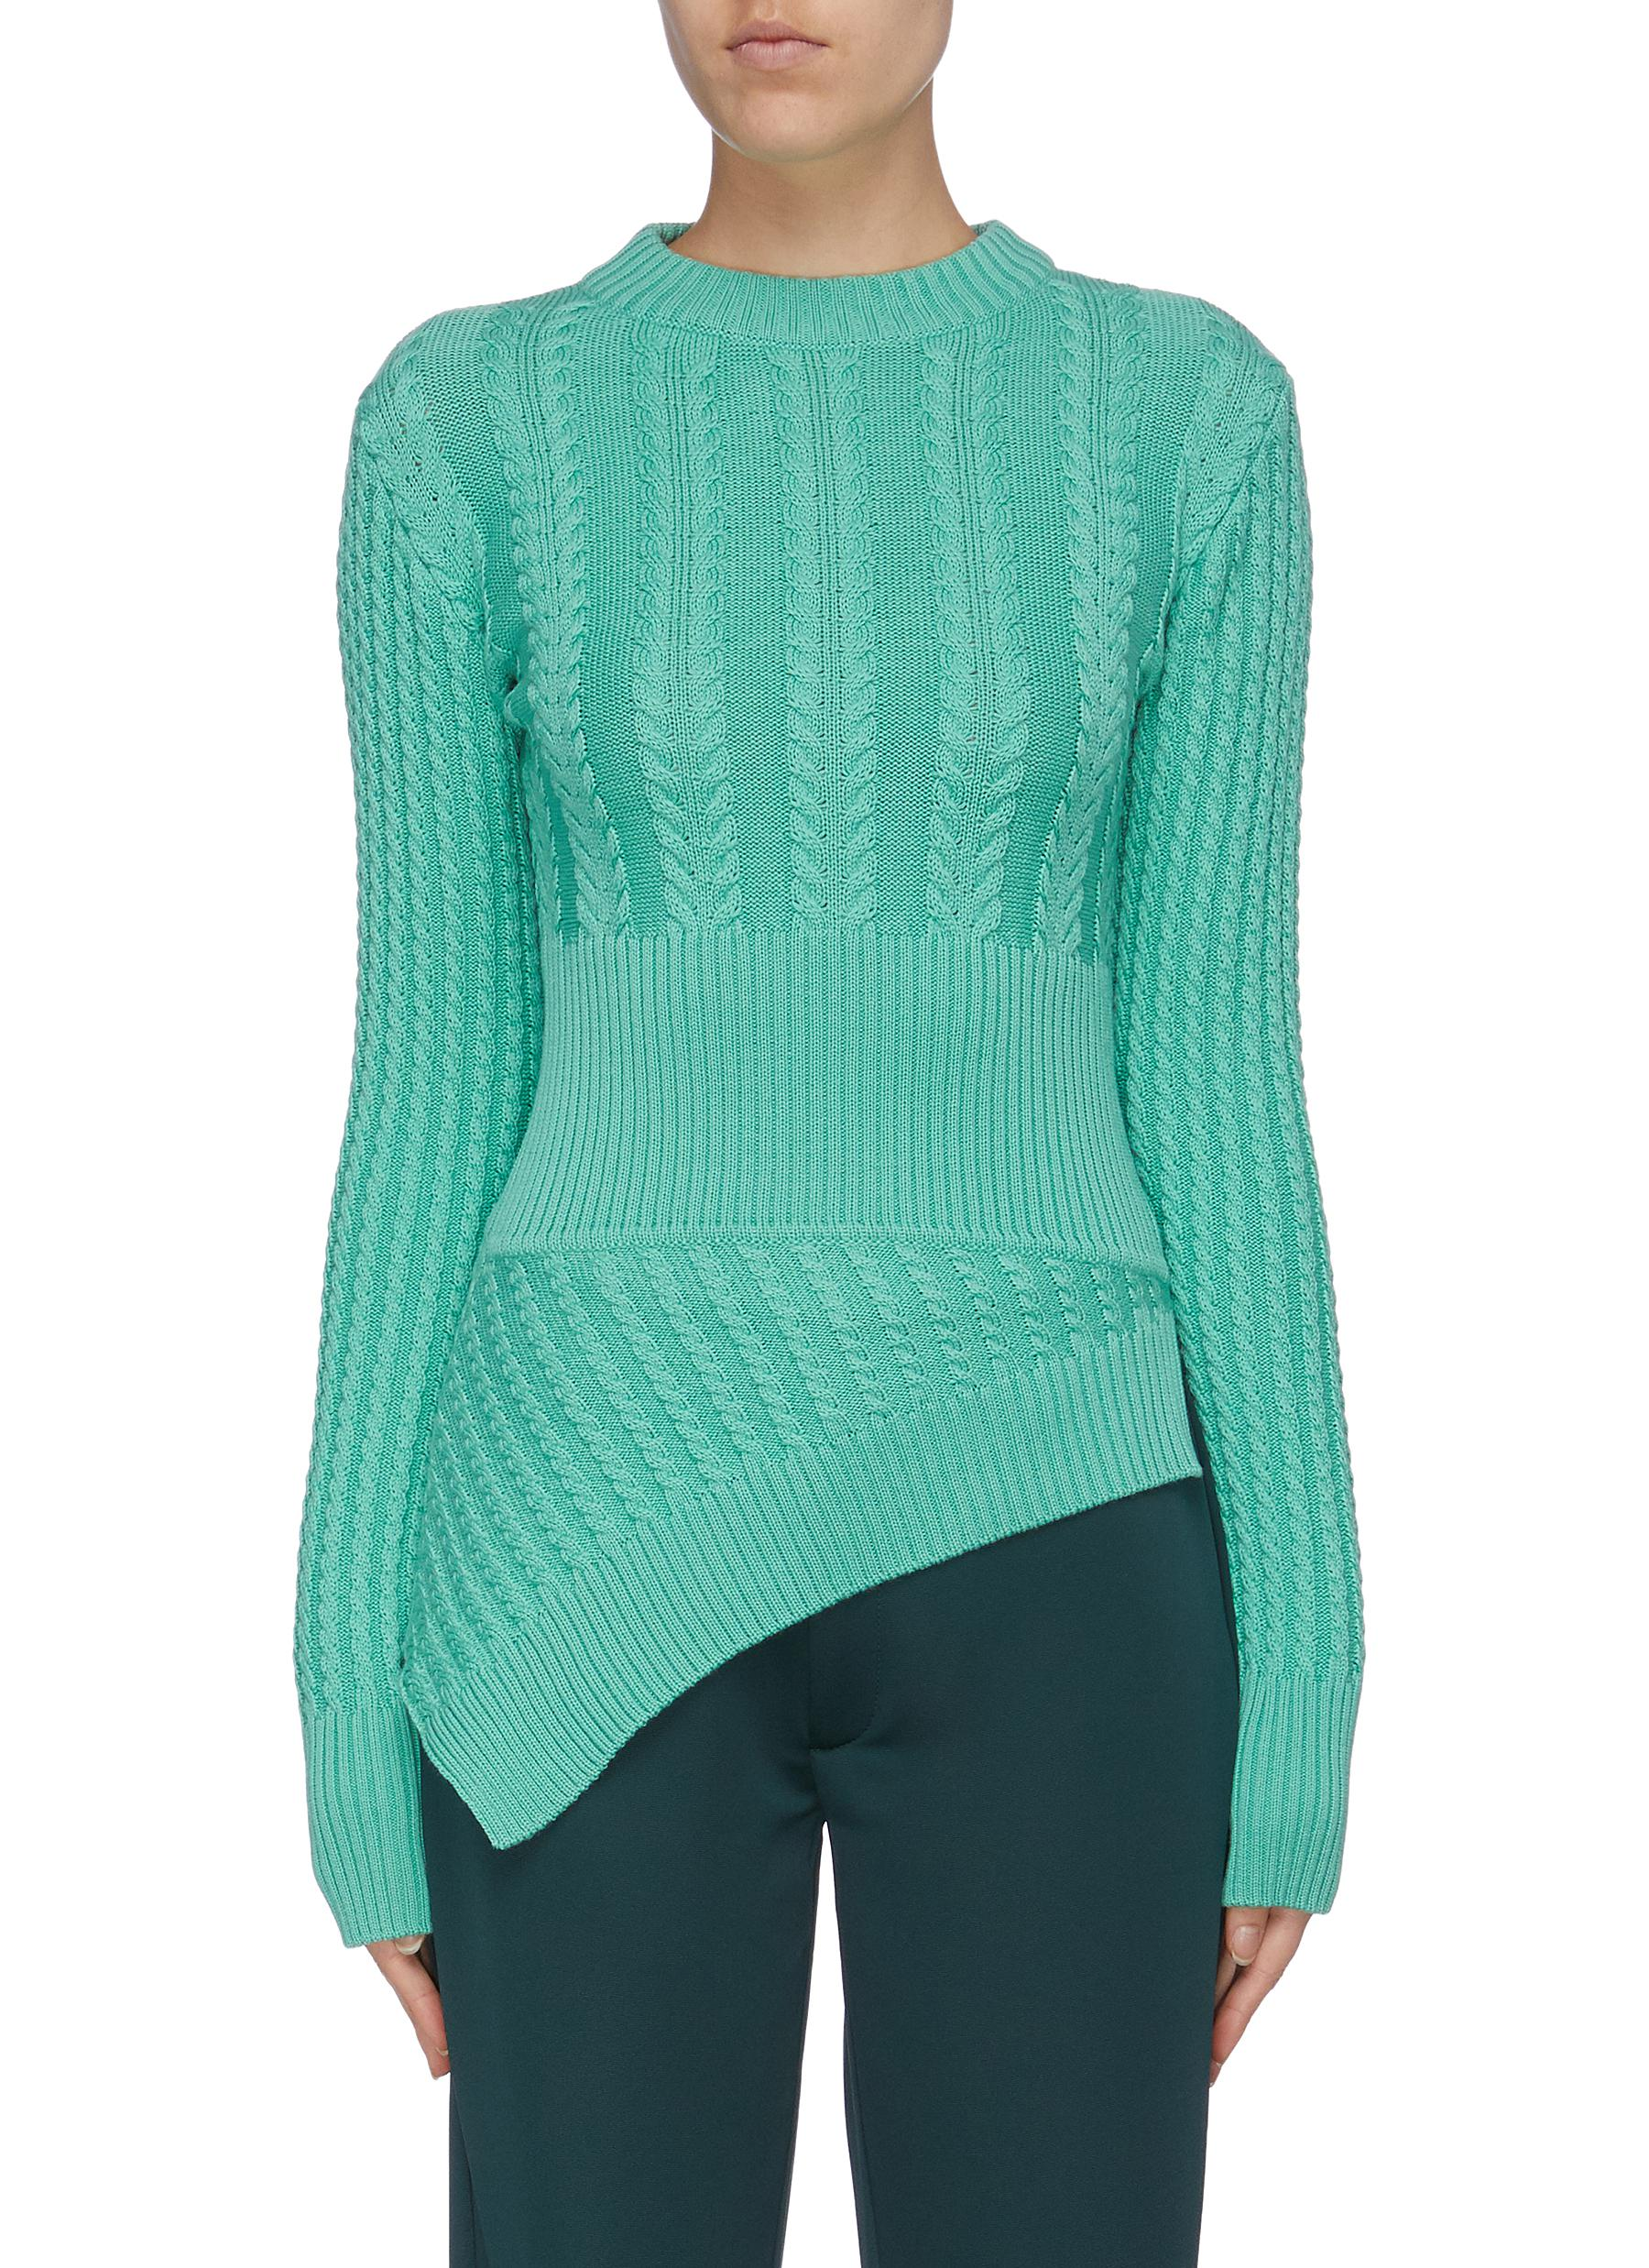 The Rufus asymmetric Merino wool cable knit peplum sweater by Maggie Marilyn